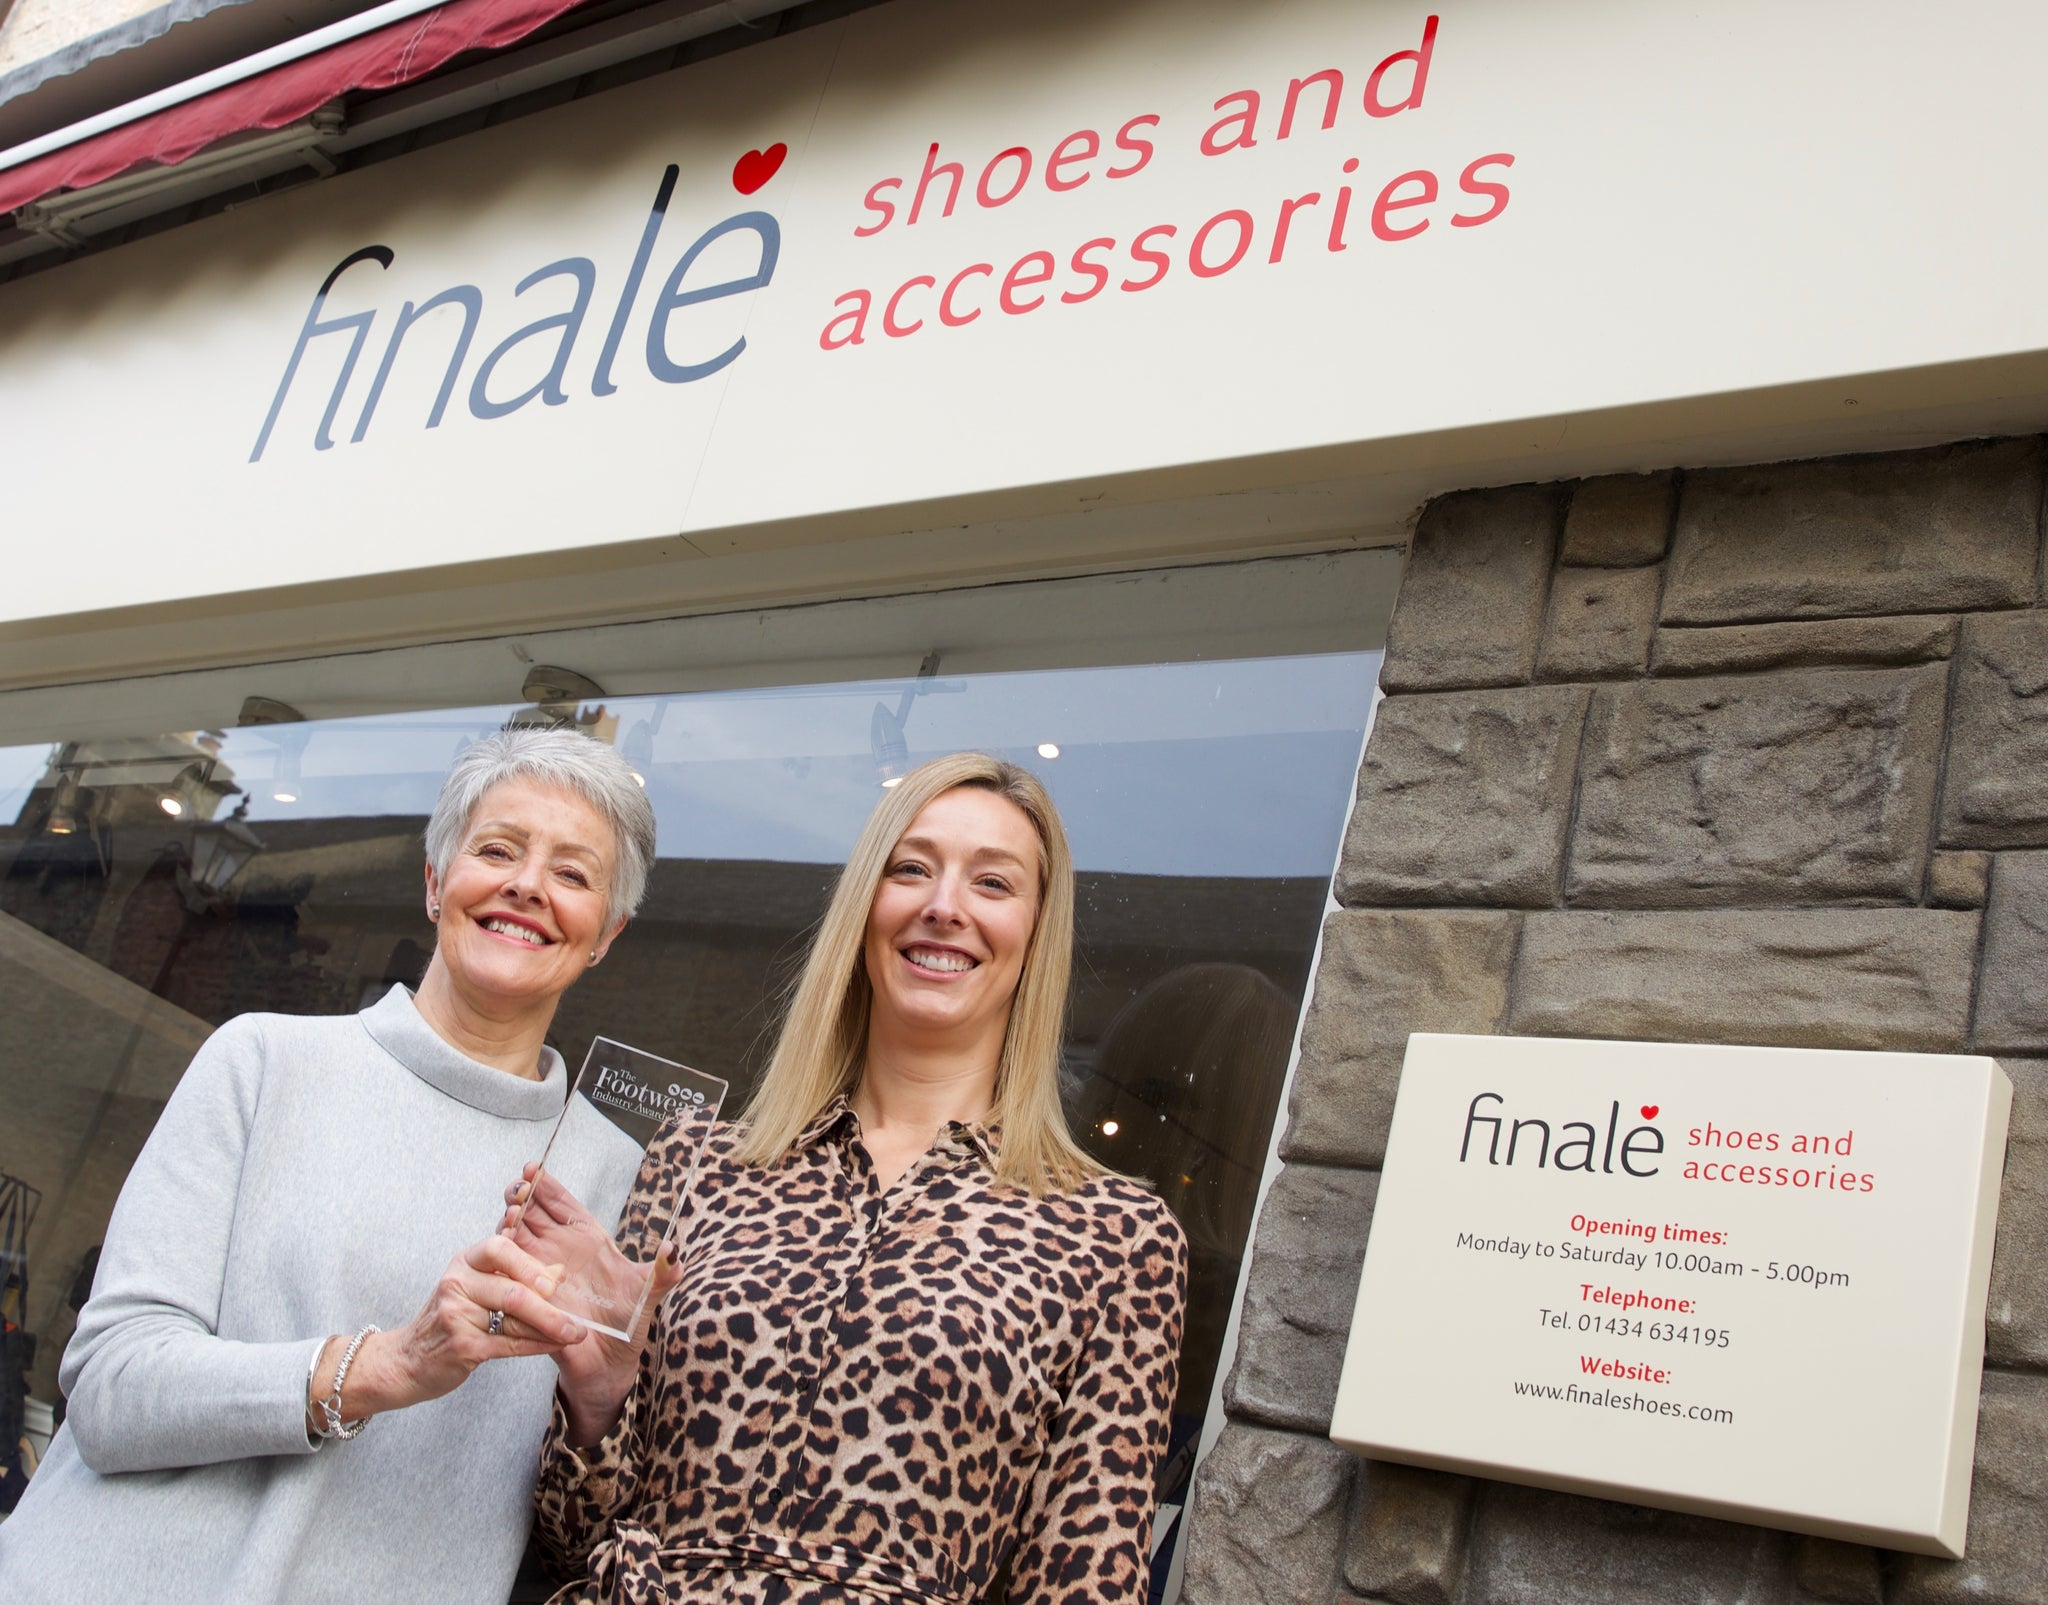 Finale are award winners! Fashion Independent Footwear Retailer of the Year 2019